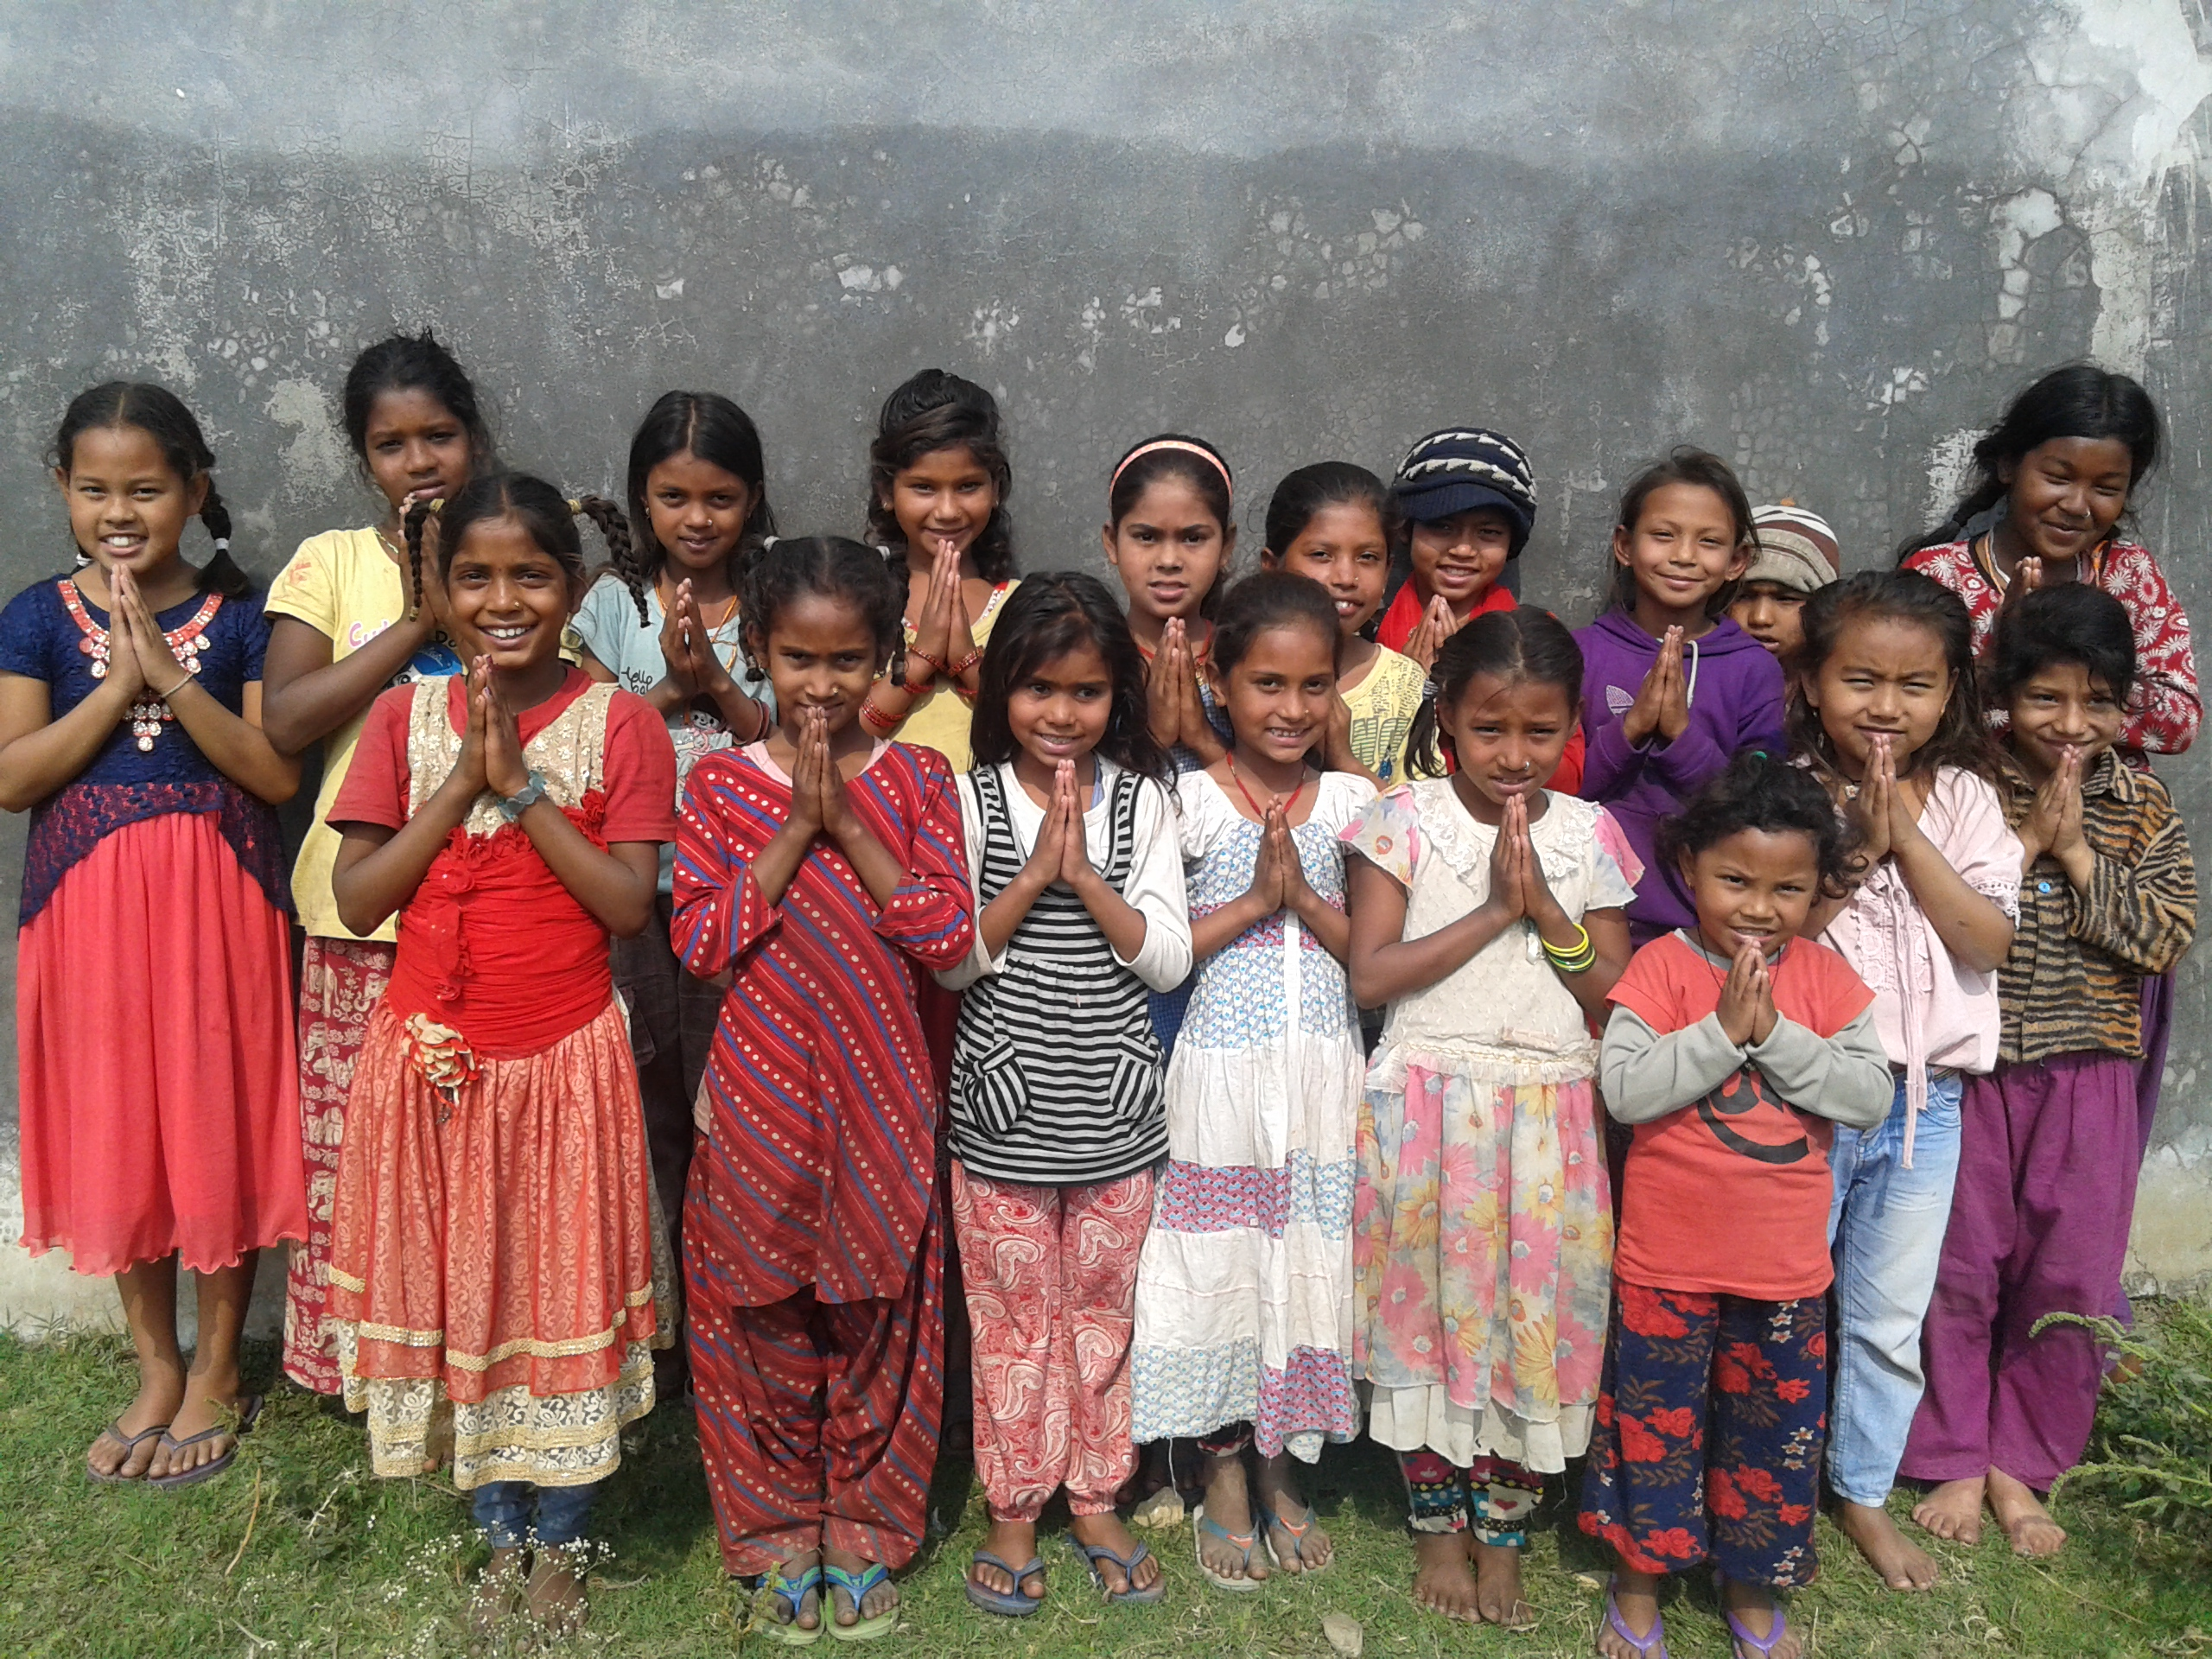 Students in the slums gather and show the traditional namaste greeting of Nepal.